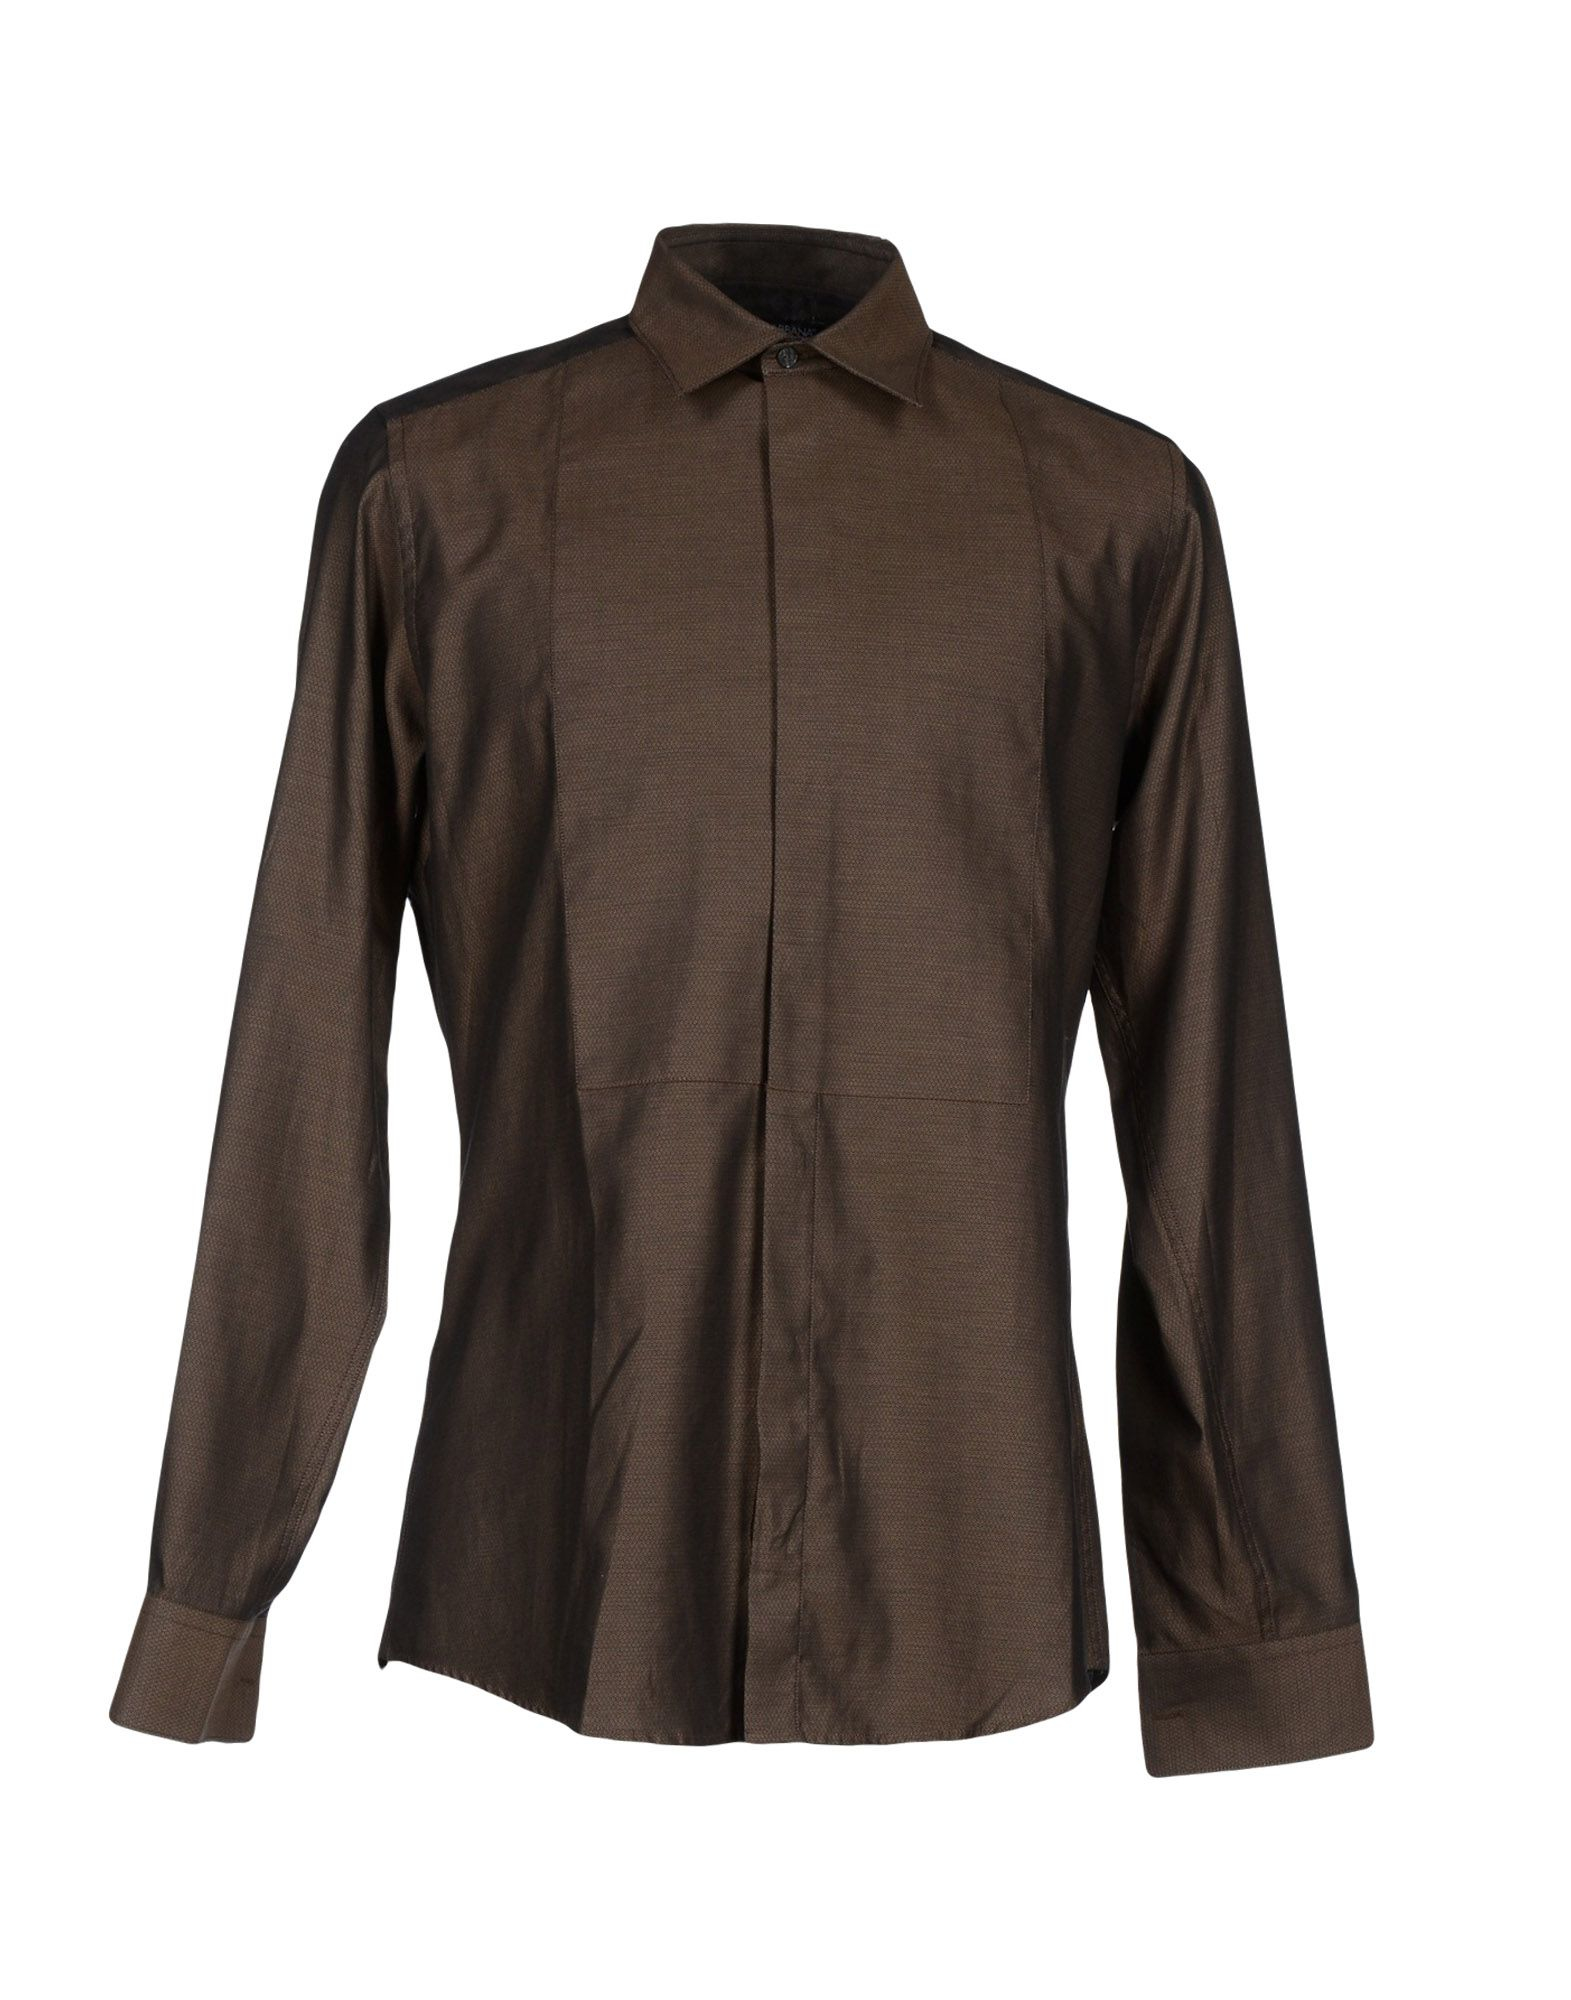 Dolce gabbana shirt in brown for men lyst for Black brown mens shirts